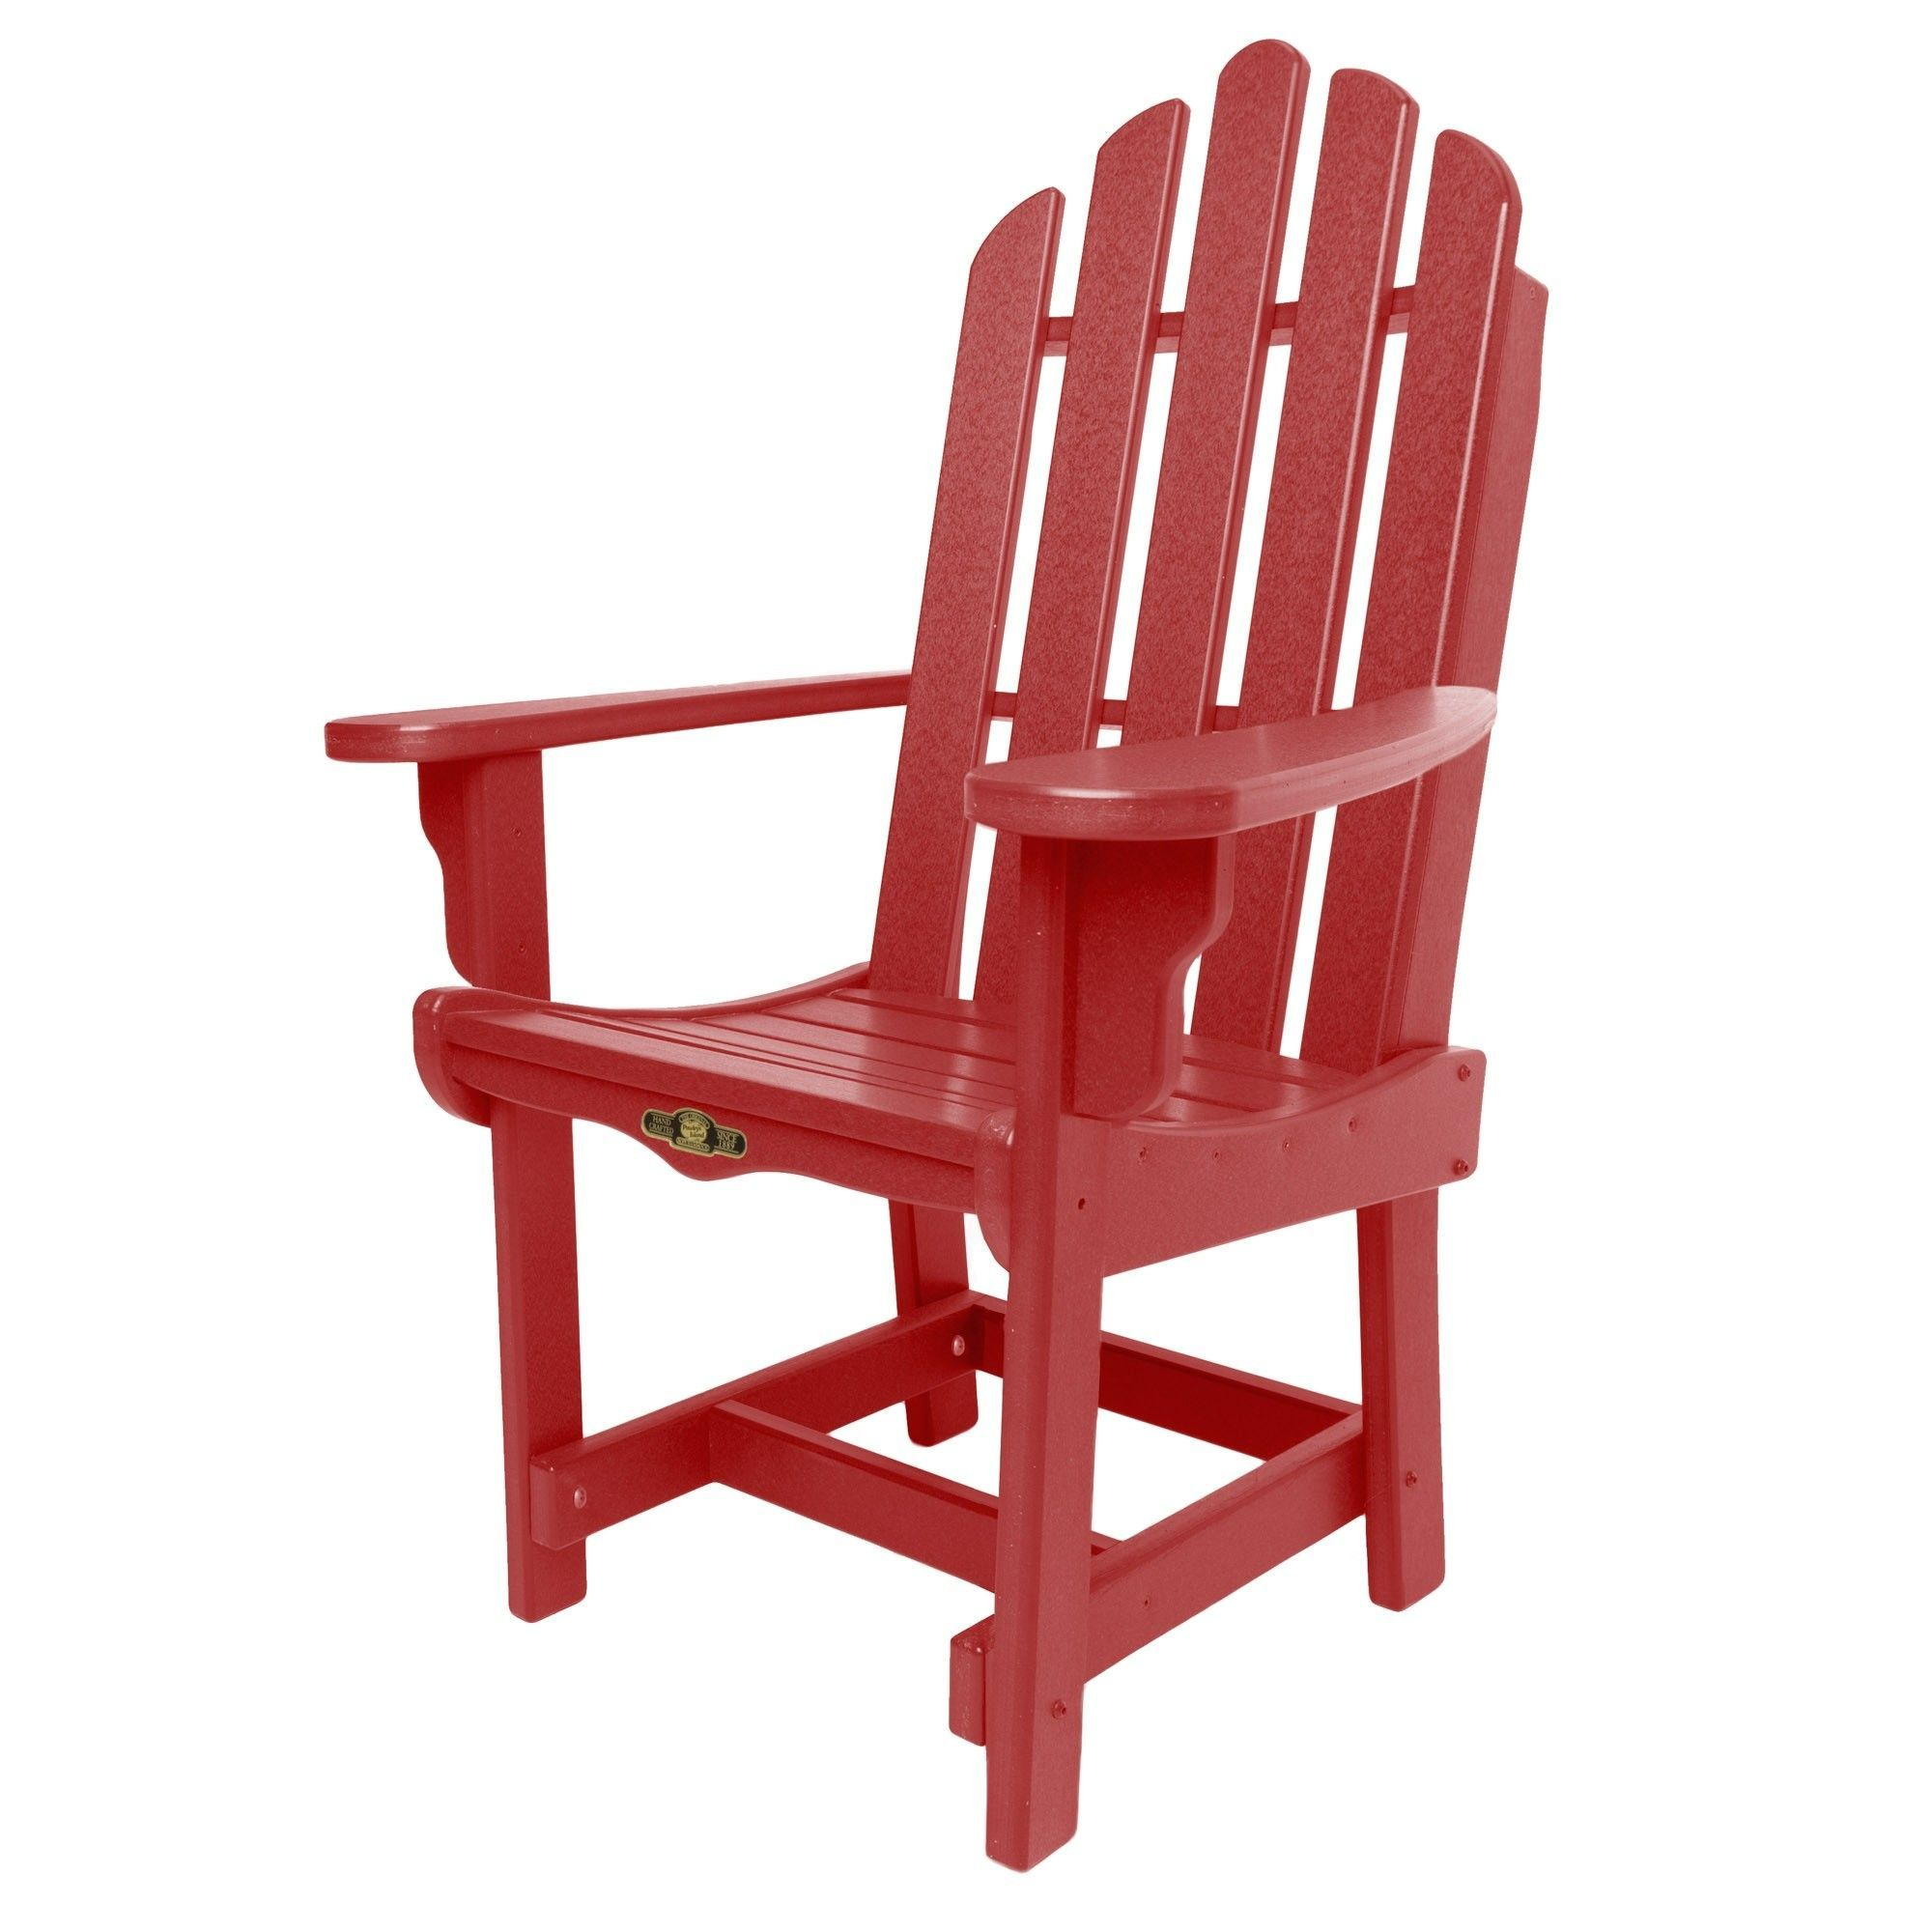 Essentials patio dining chair essentials patio dining and outdoor